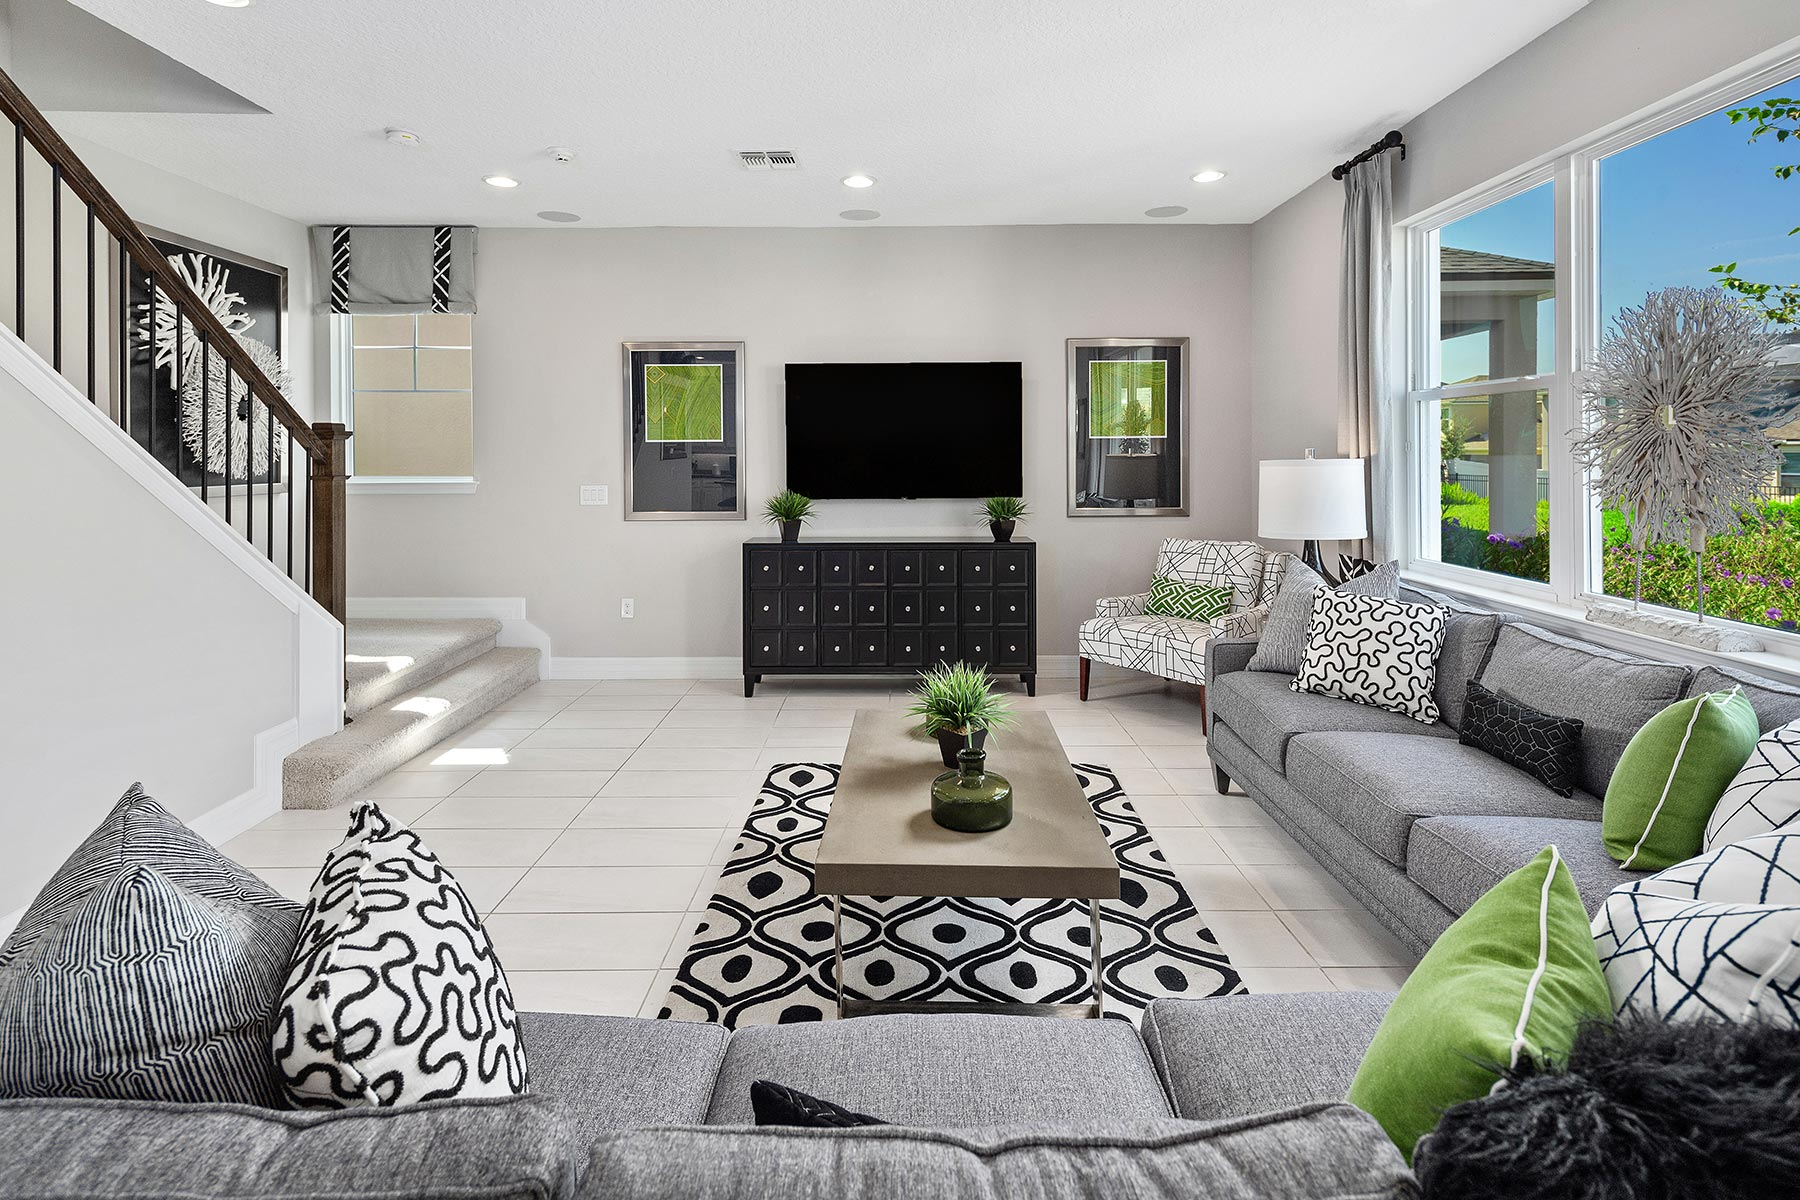 Campbell Plan Greatroom at Tohoqua in Kissimmee Florida by Mattamy Homes